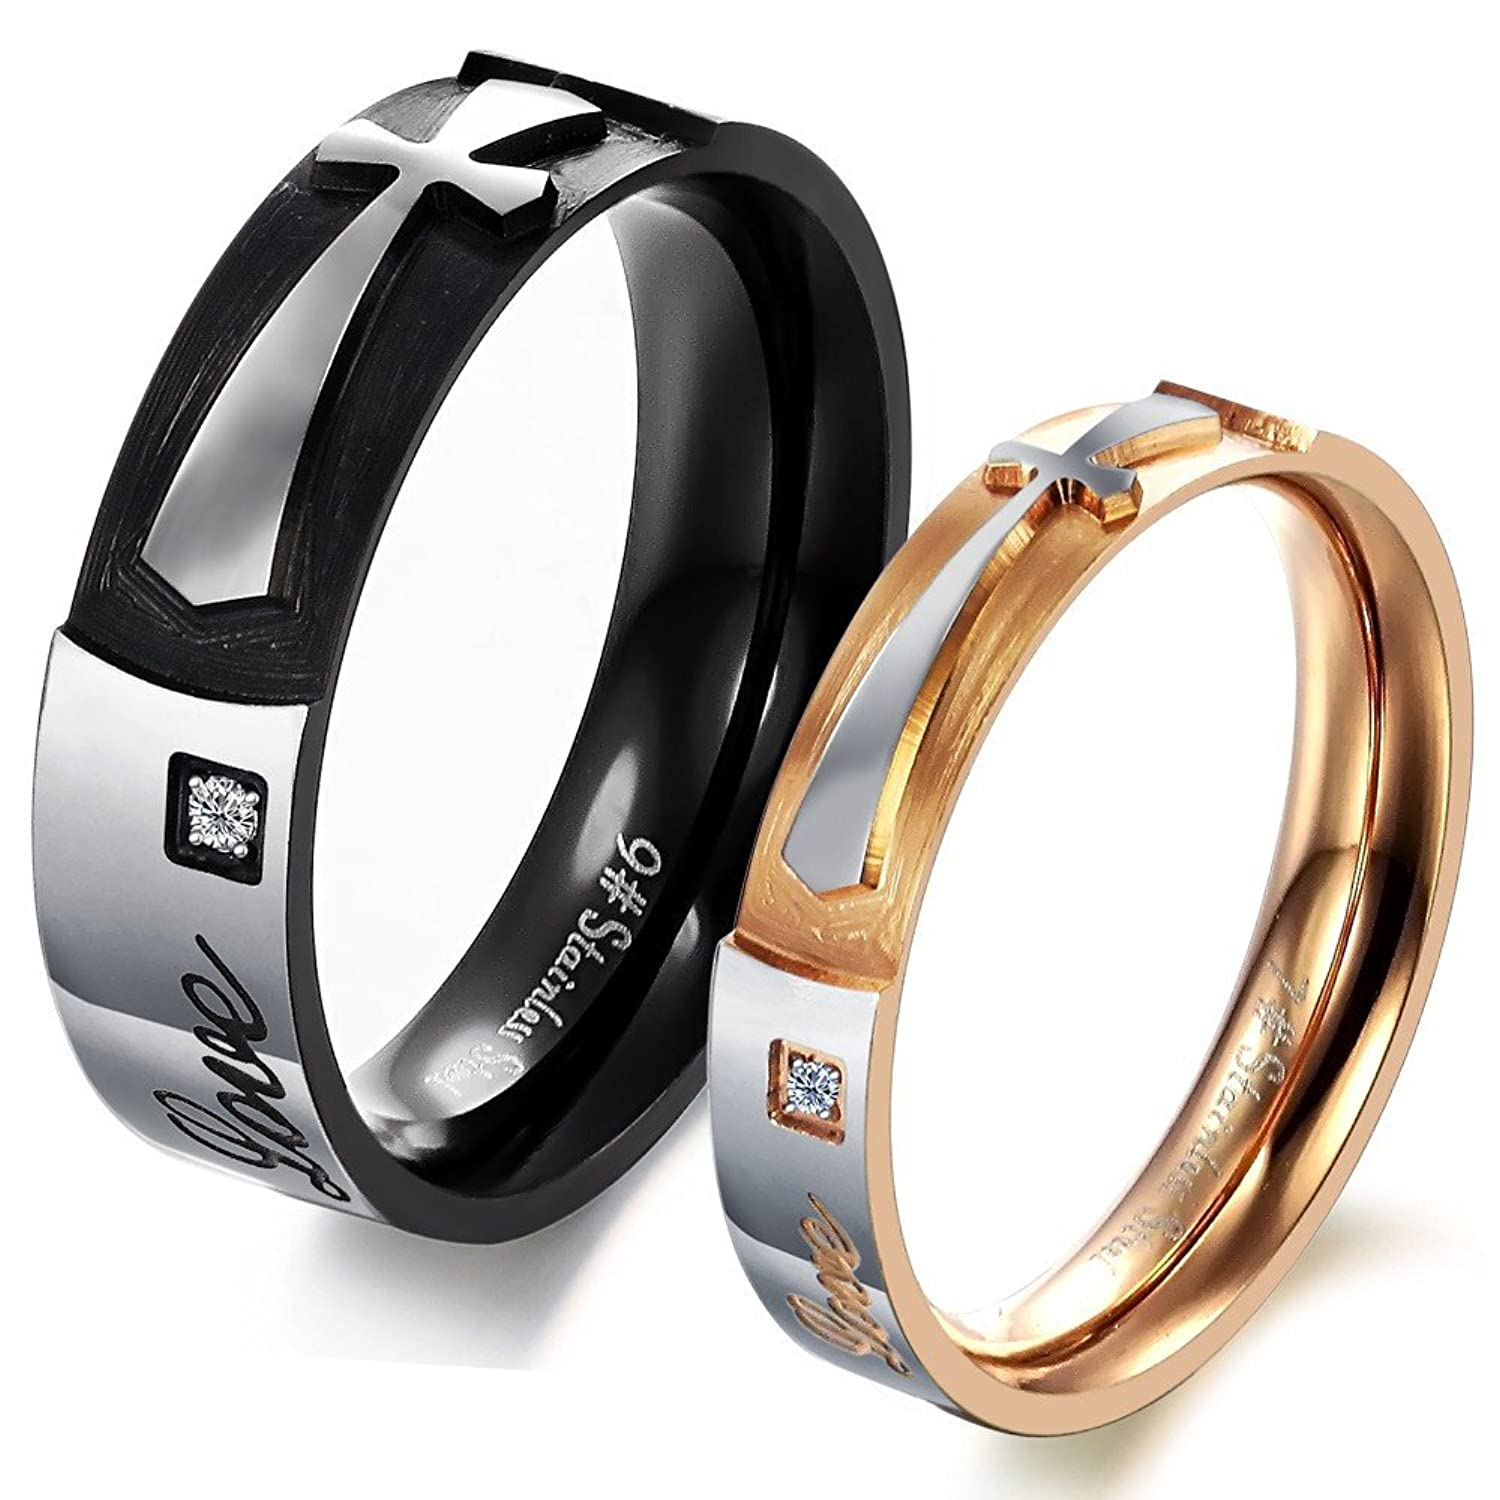 rings fashion steel wedding wholesale jewelry stainless engagement jc couple